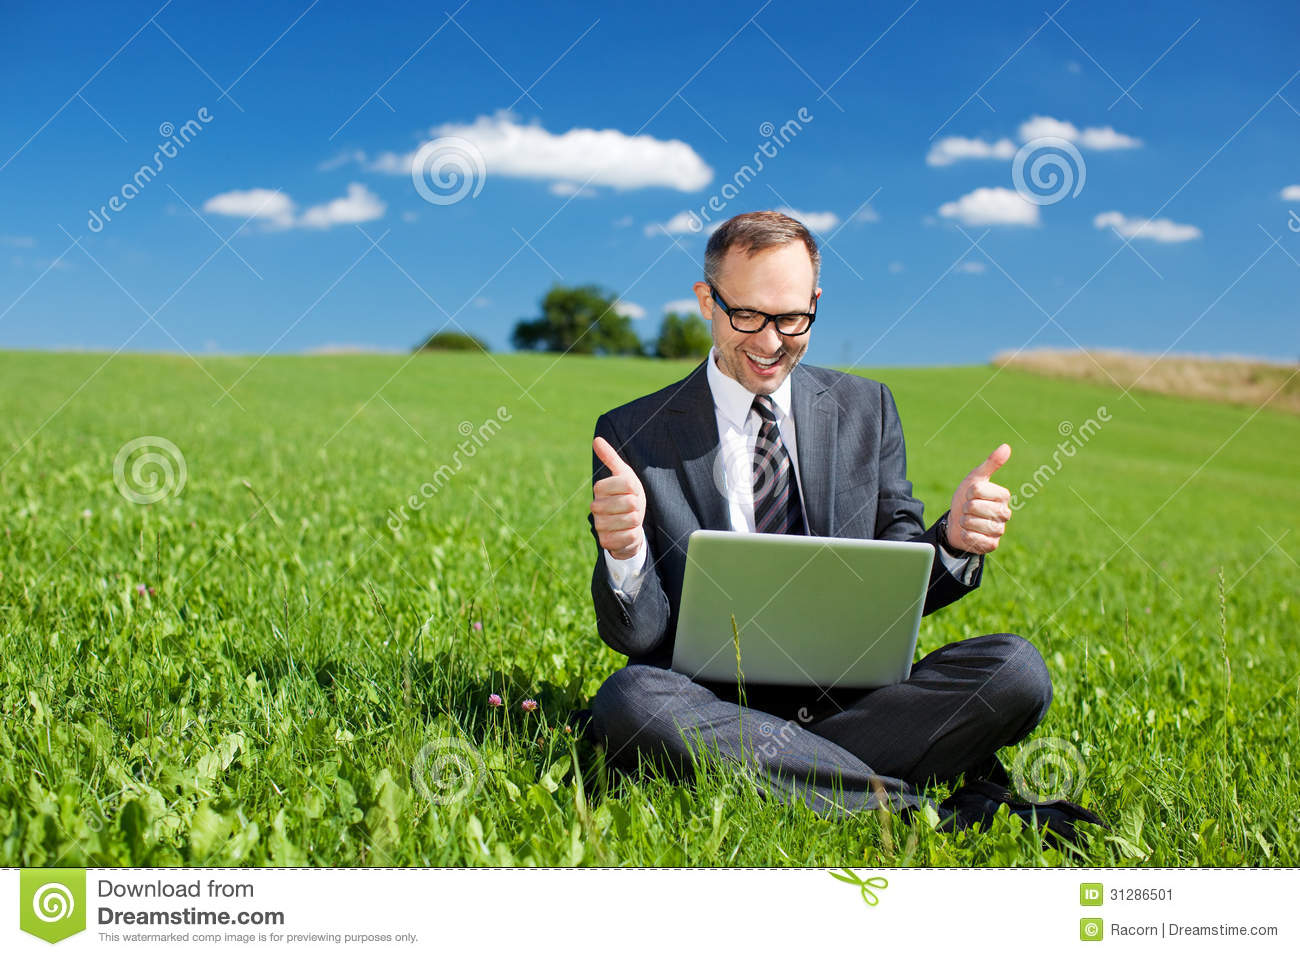 Man Working Outdoors In Nature Stock Image - Image: 31286501